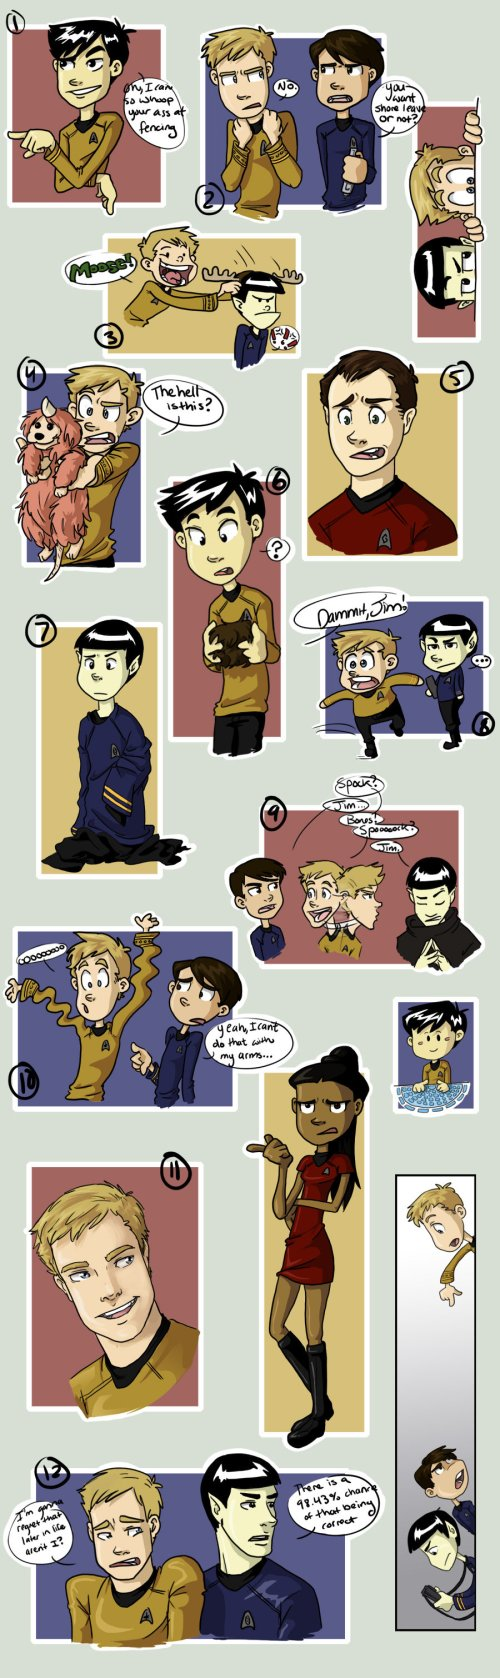 Trek_Spam_4_by_silveraaki